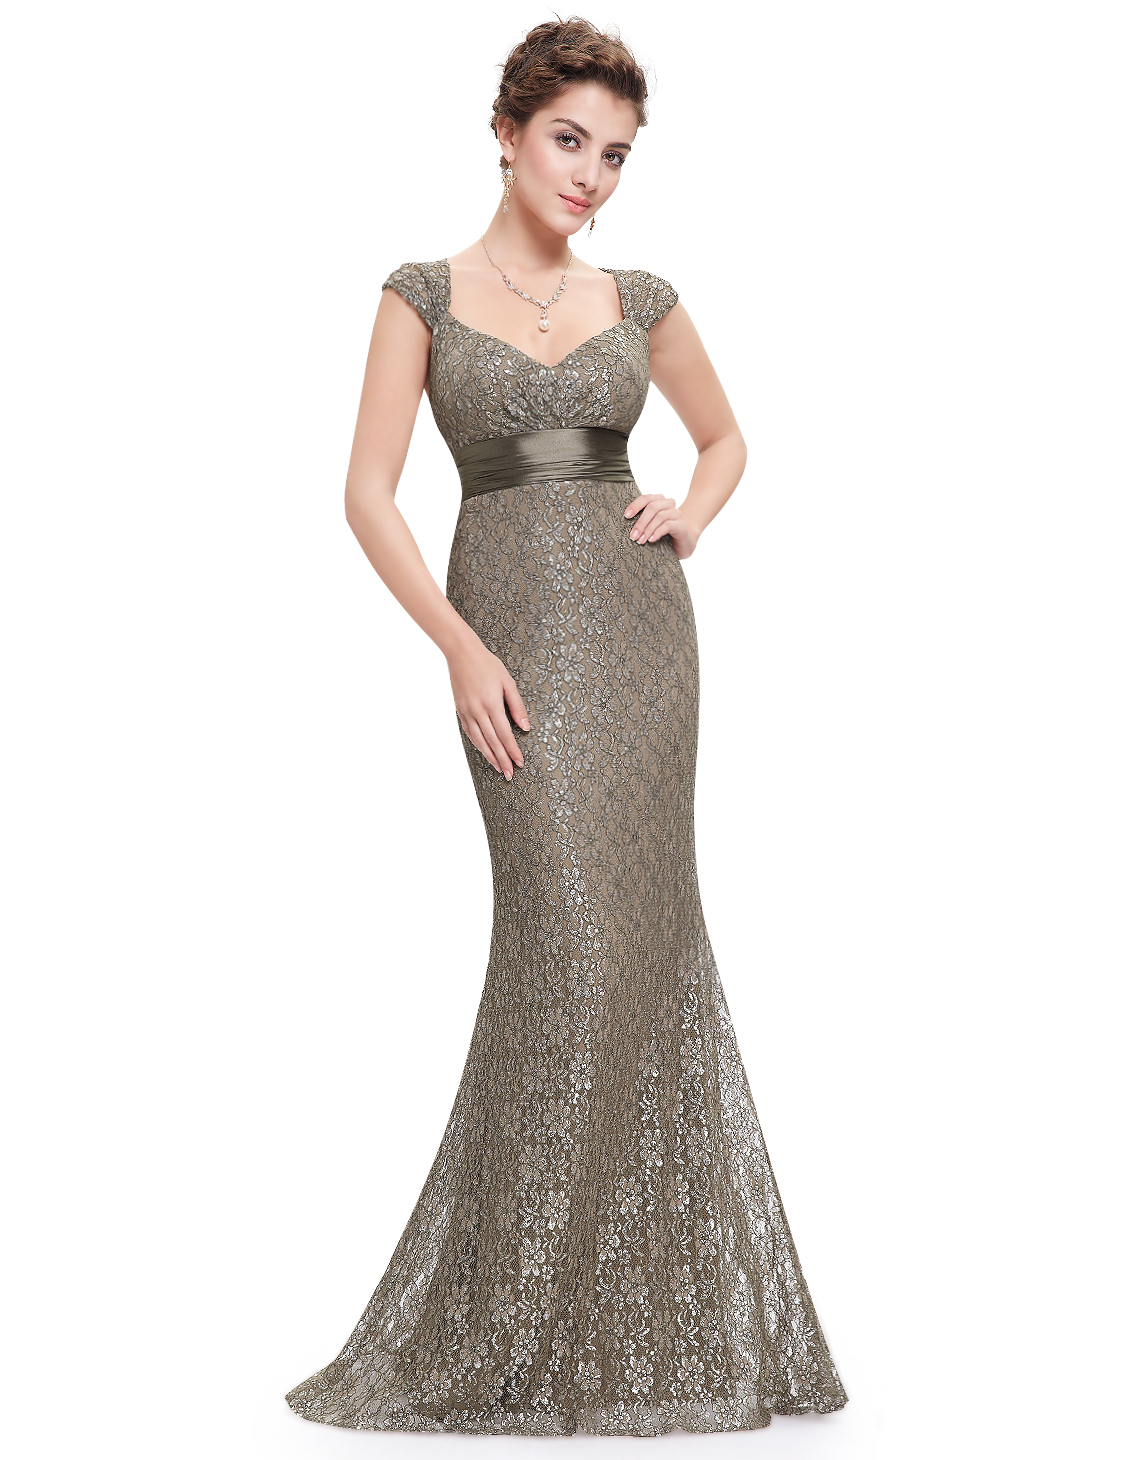 Ever-pretty-US-Long-Mermaid-Plus-Size-Cocktail-Prom-Gowns-Evening-Party-Dresses thumbnail 10